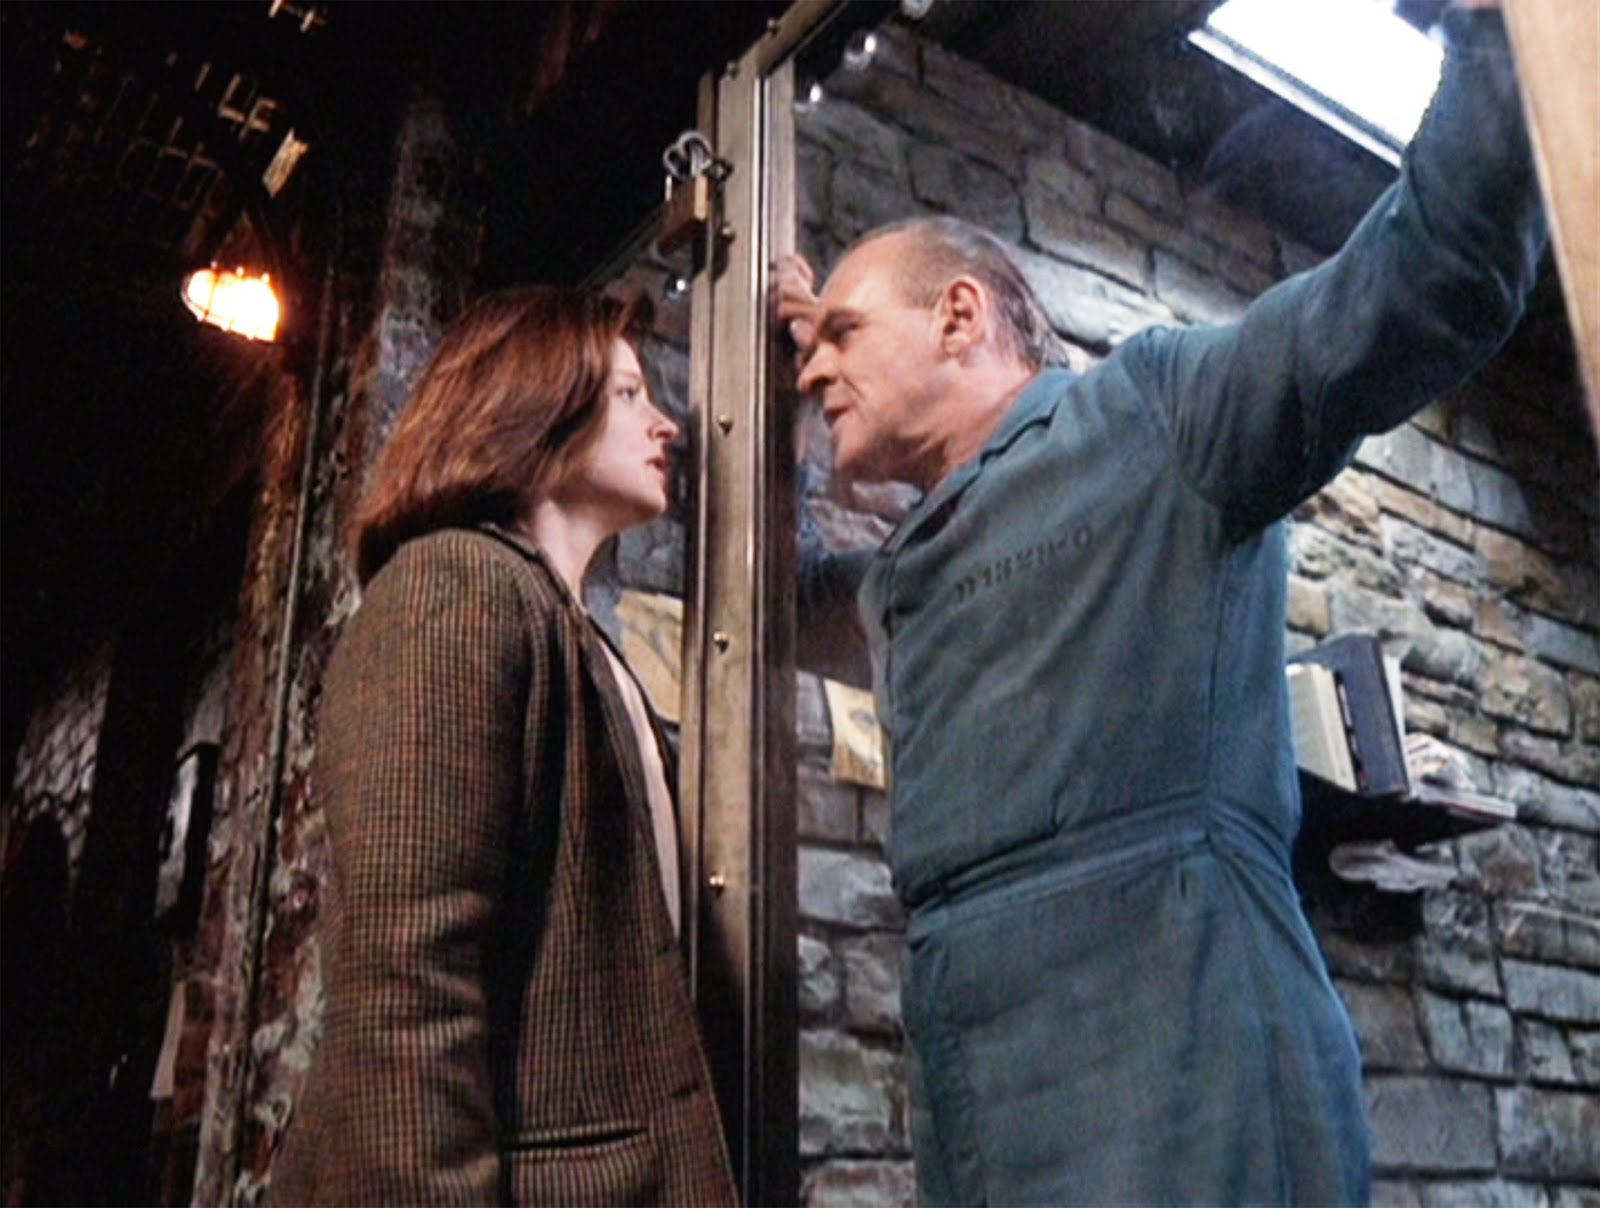 Answer: Dr. Hannibal Lecter in The Silence of the Lambs (1991)